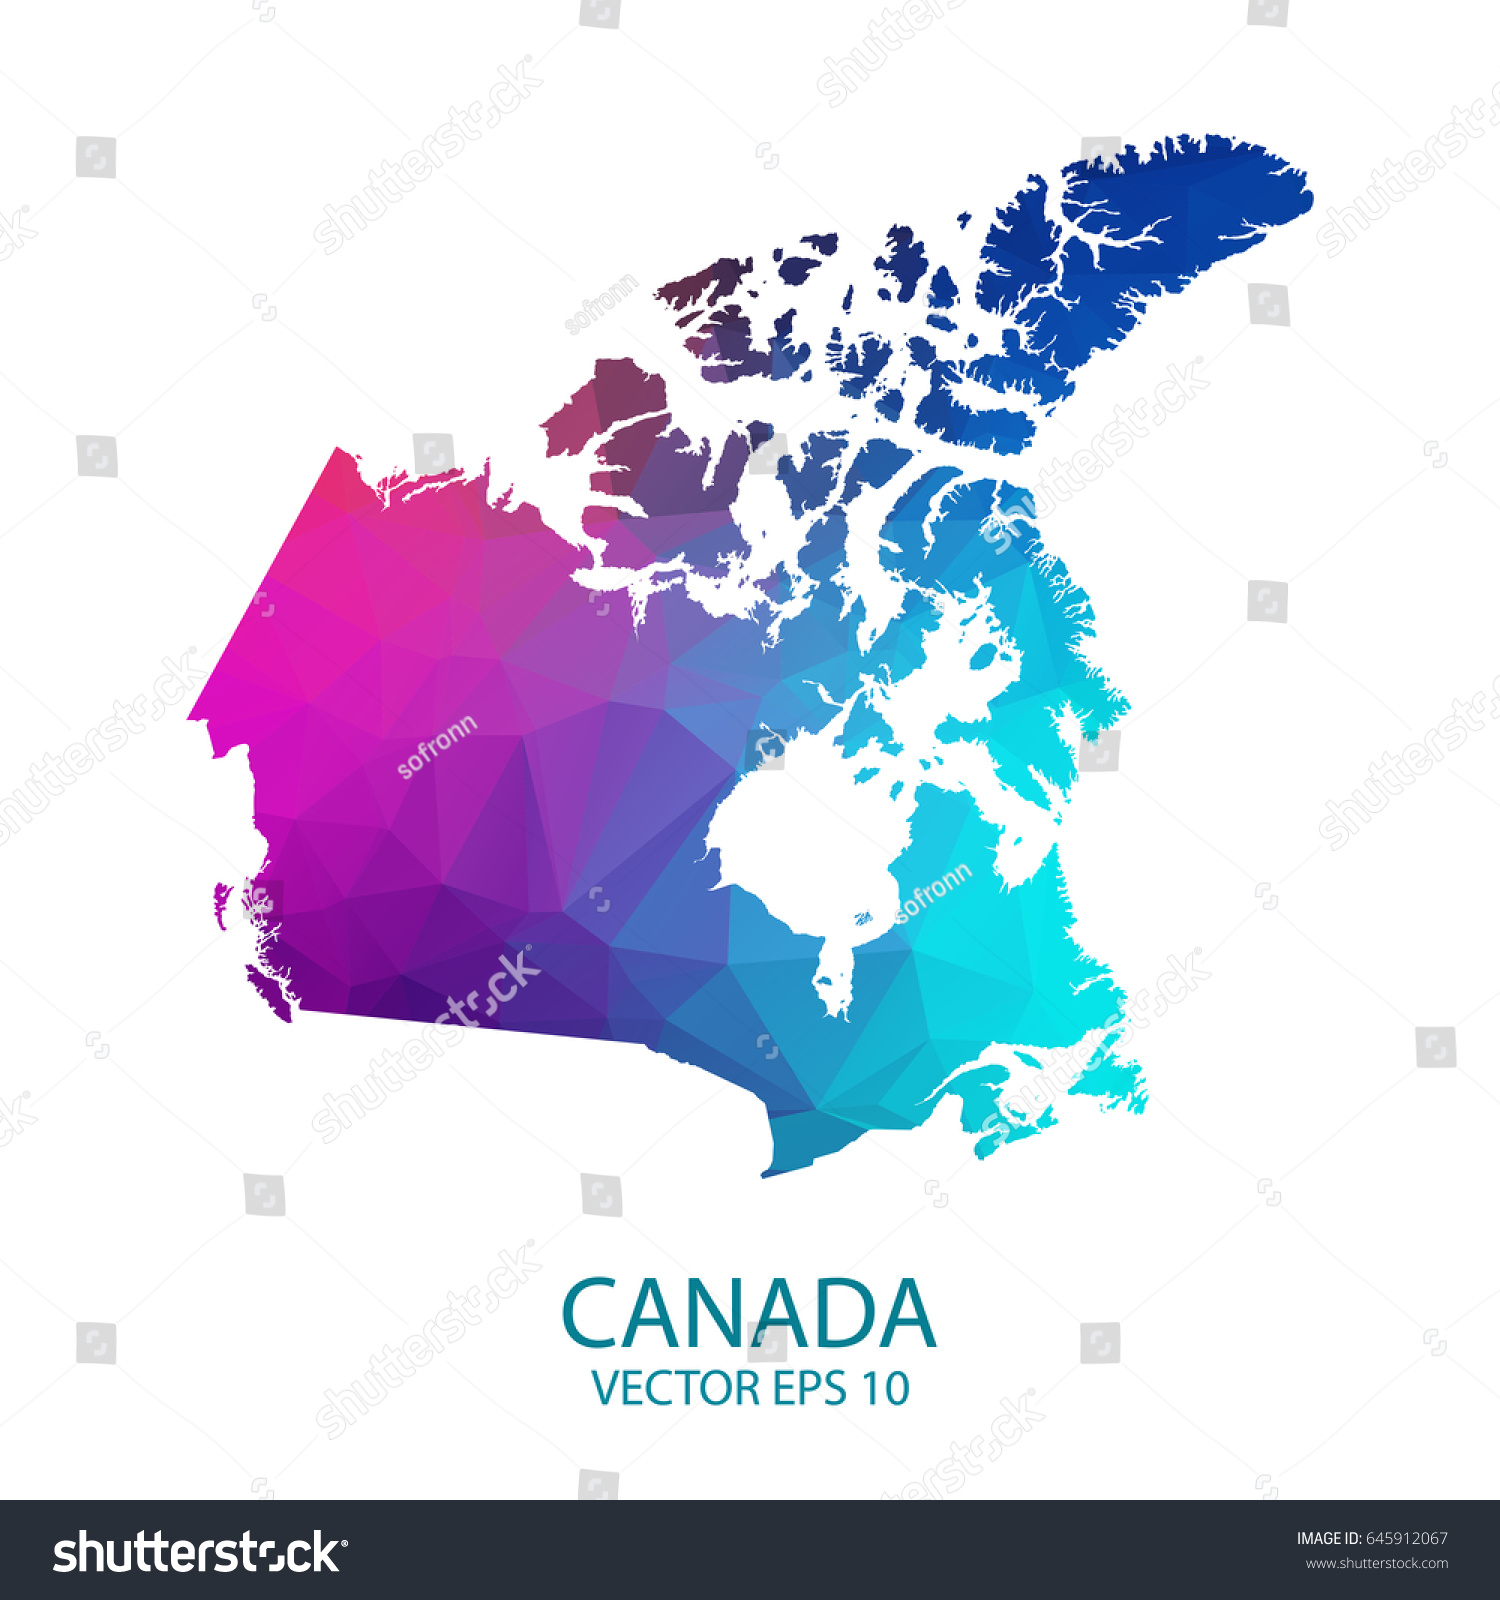 Map Of Canada Eps.Low Poly Map Canada Colorful Polygonal Stock Vector Royalty Free